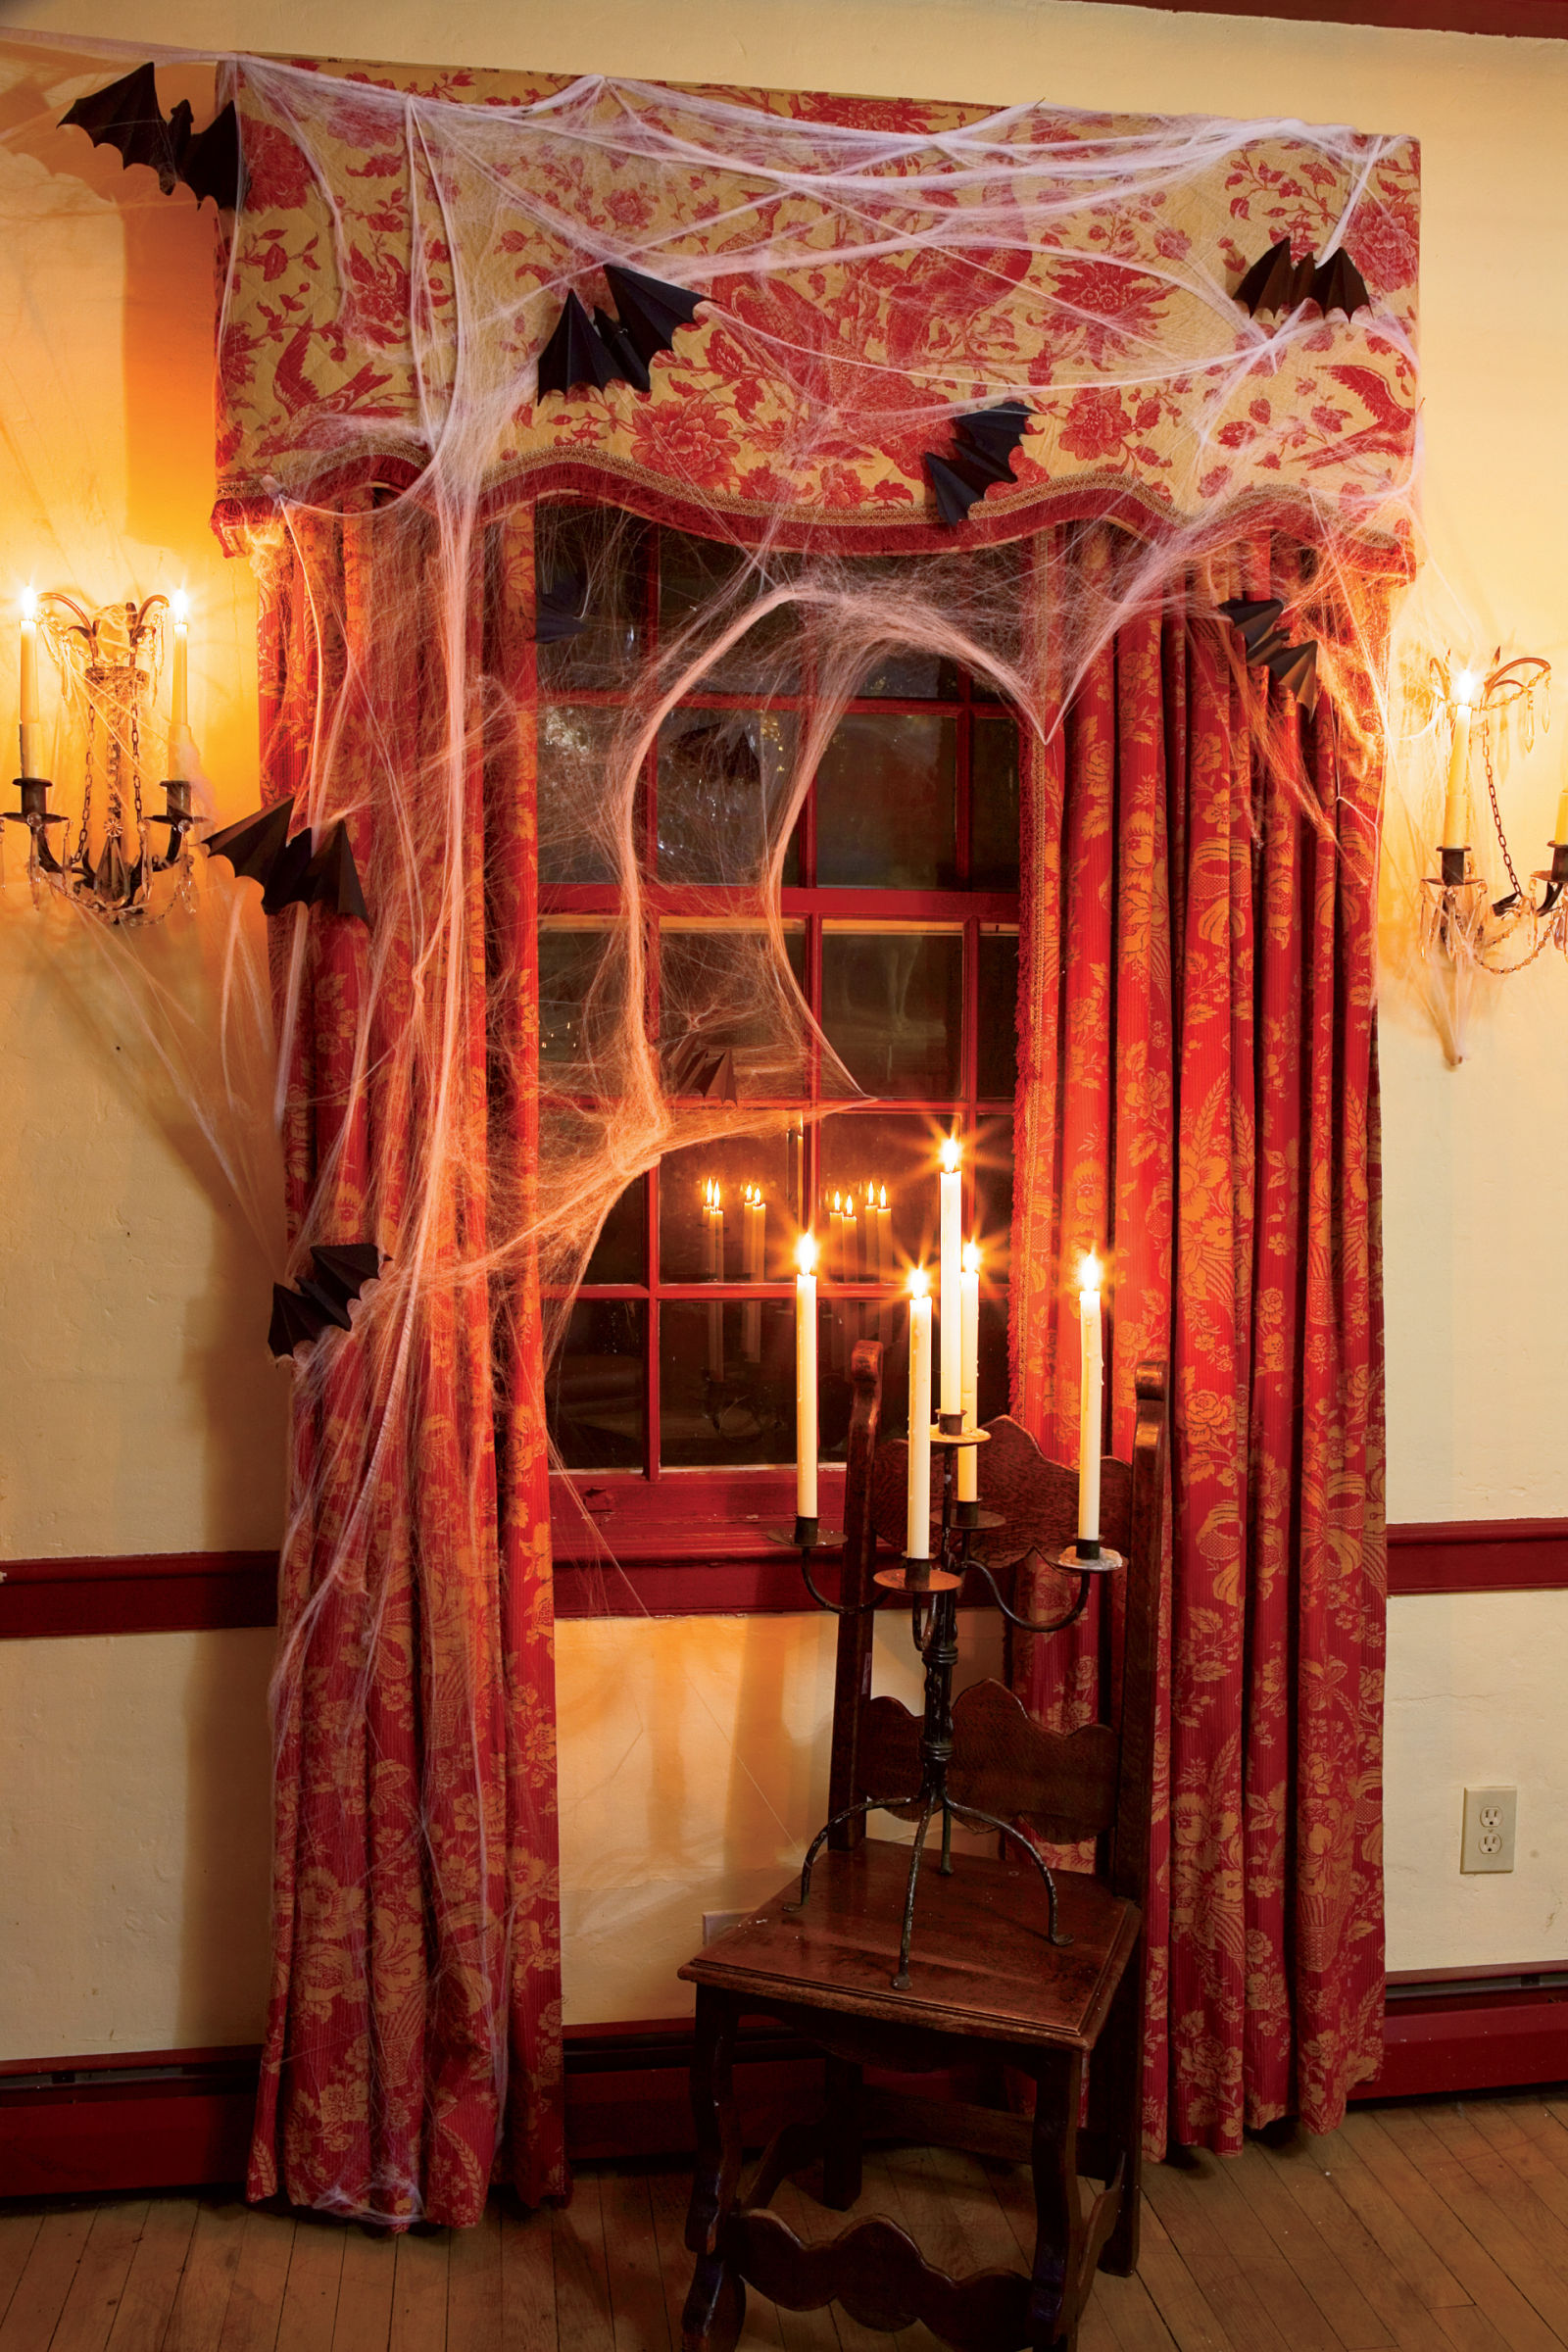 10 spooky window decorations to get your home ready for halloween modernize. Black Bedroom Furniture Sets. Home Design Ideas